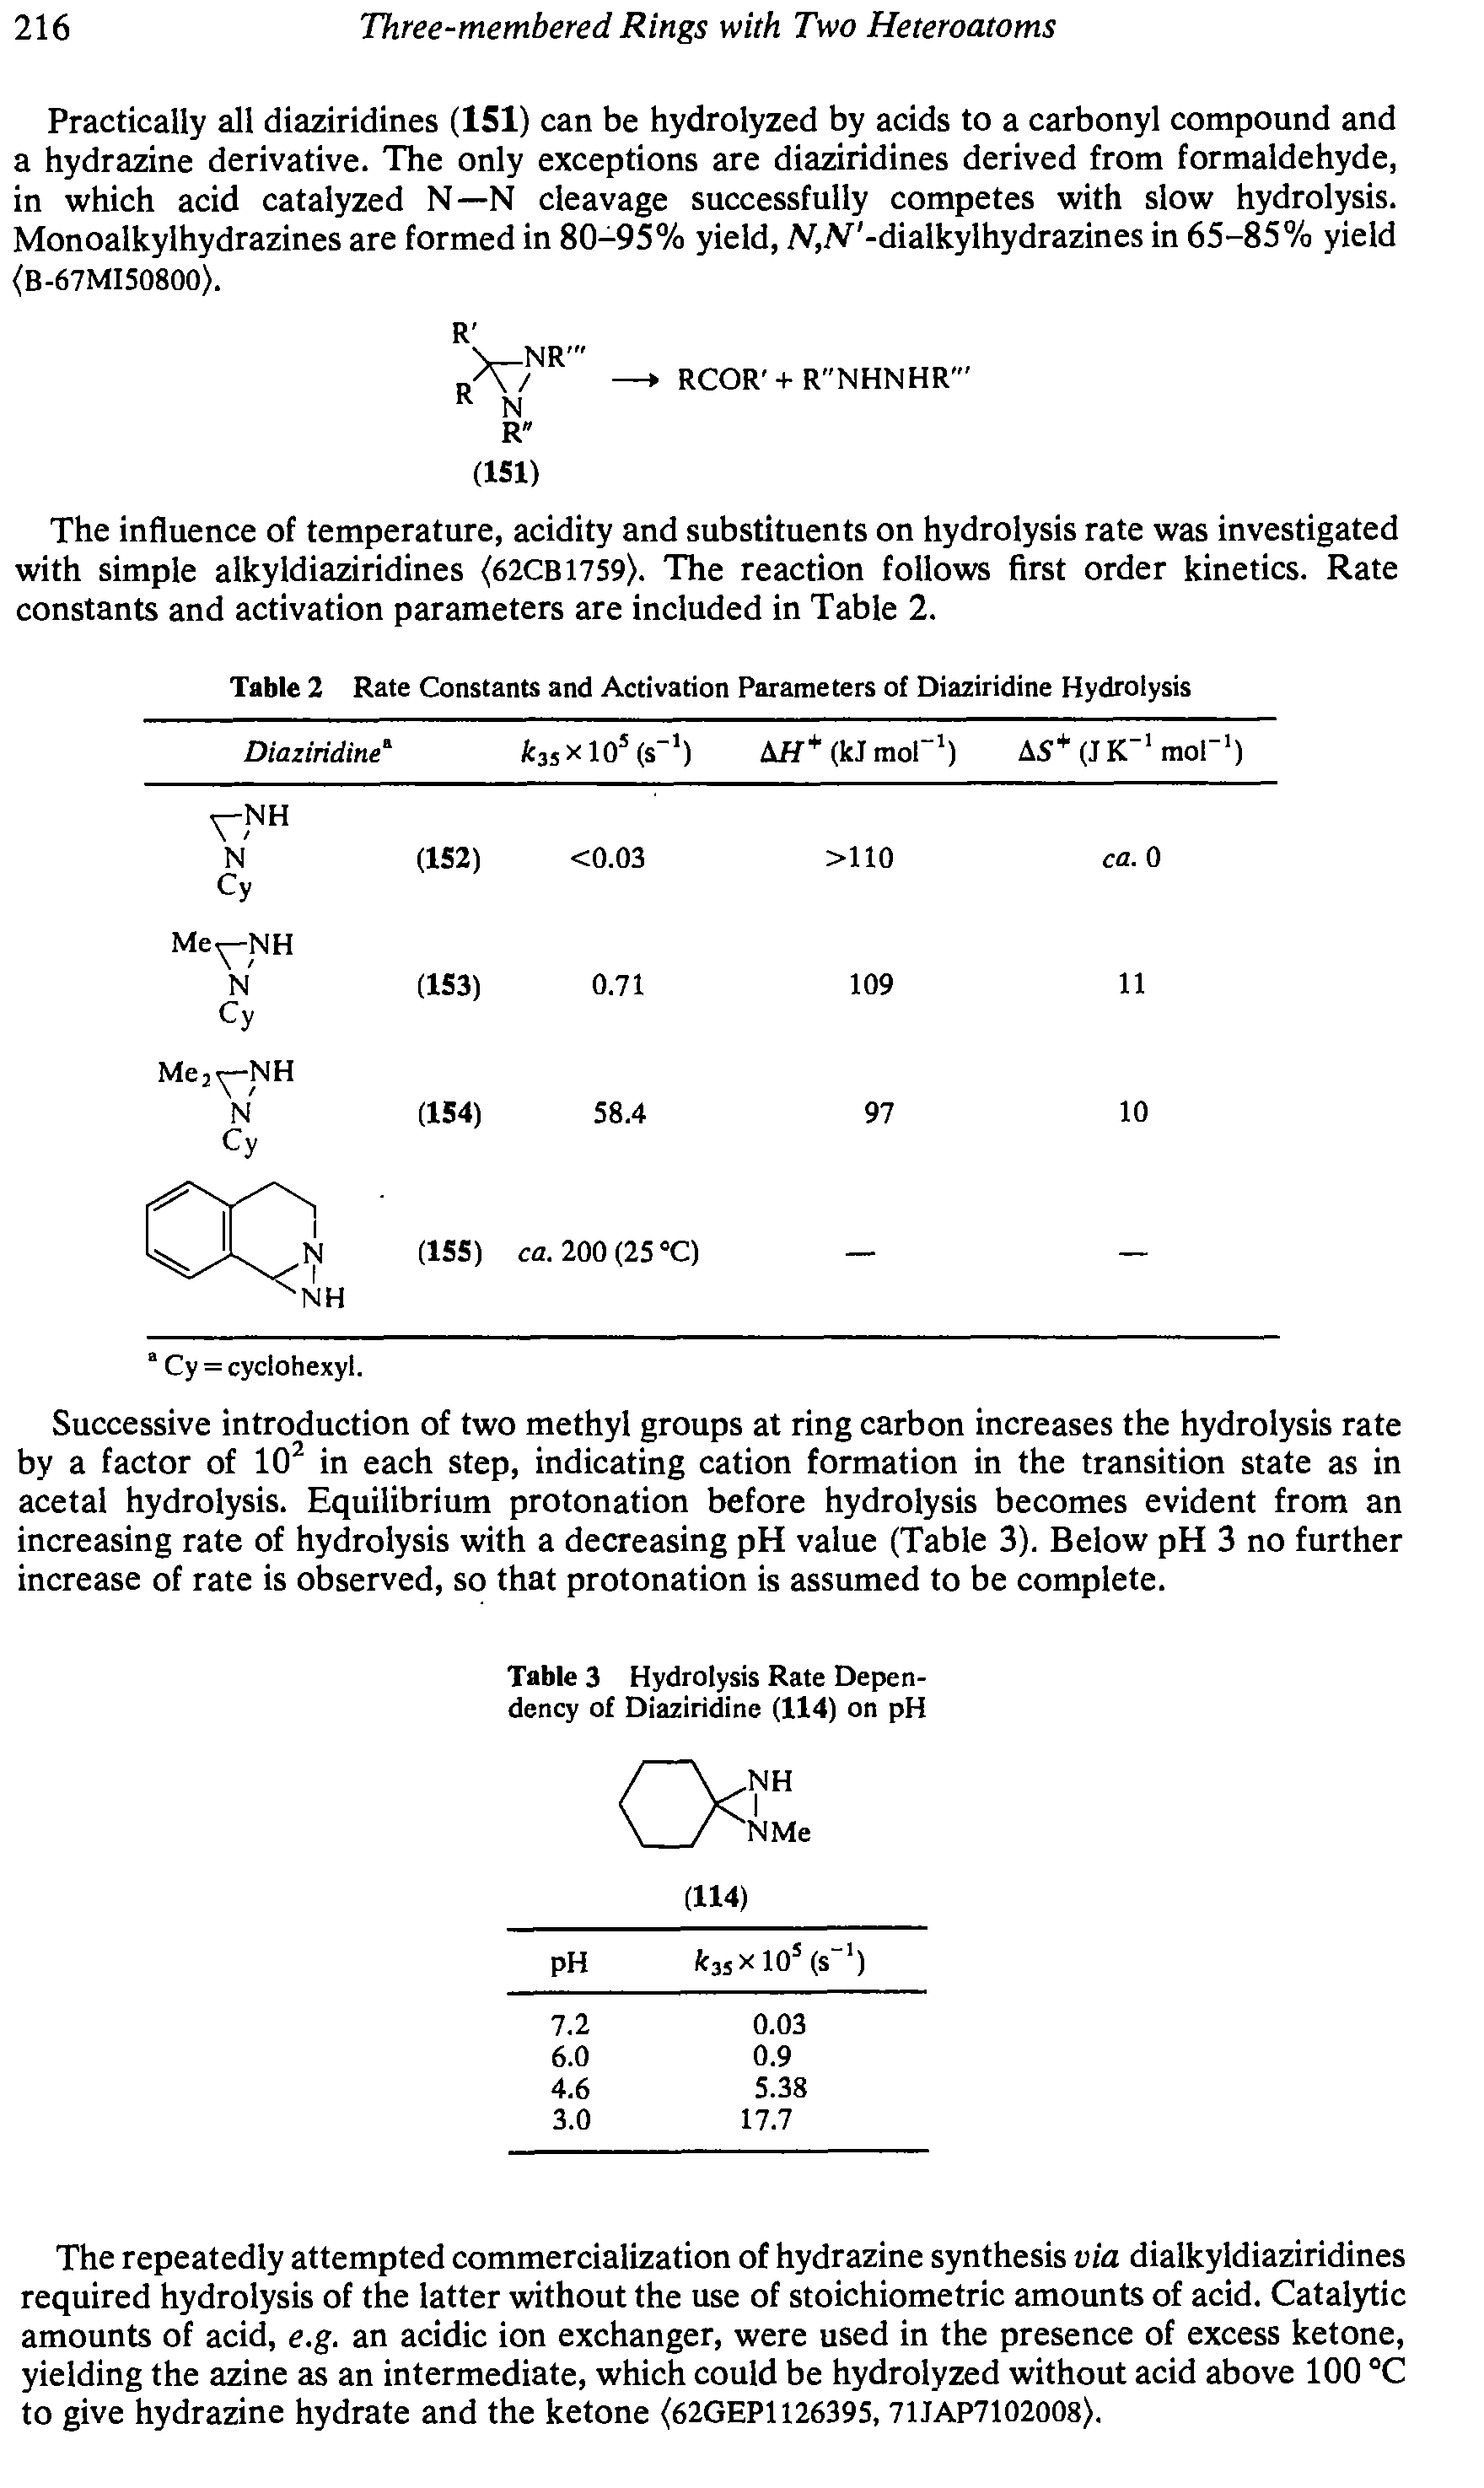 "Table 2 <a href=""/info/rate_constant"">Rate Constants</a> and Activation Parameters of Diaziridine Hydrolysis"